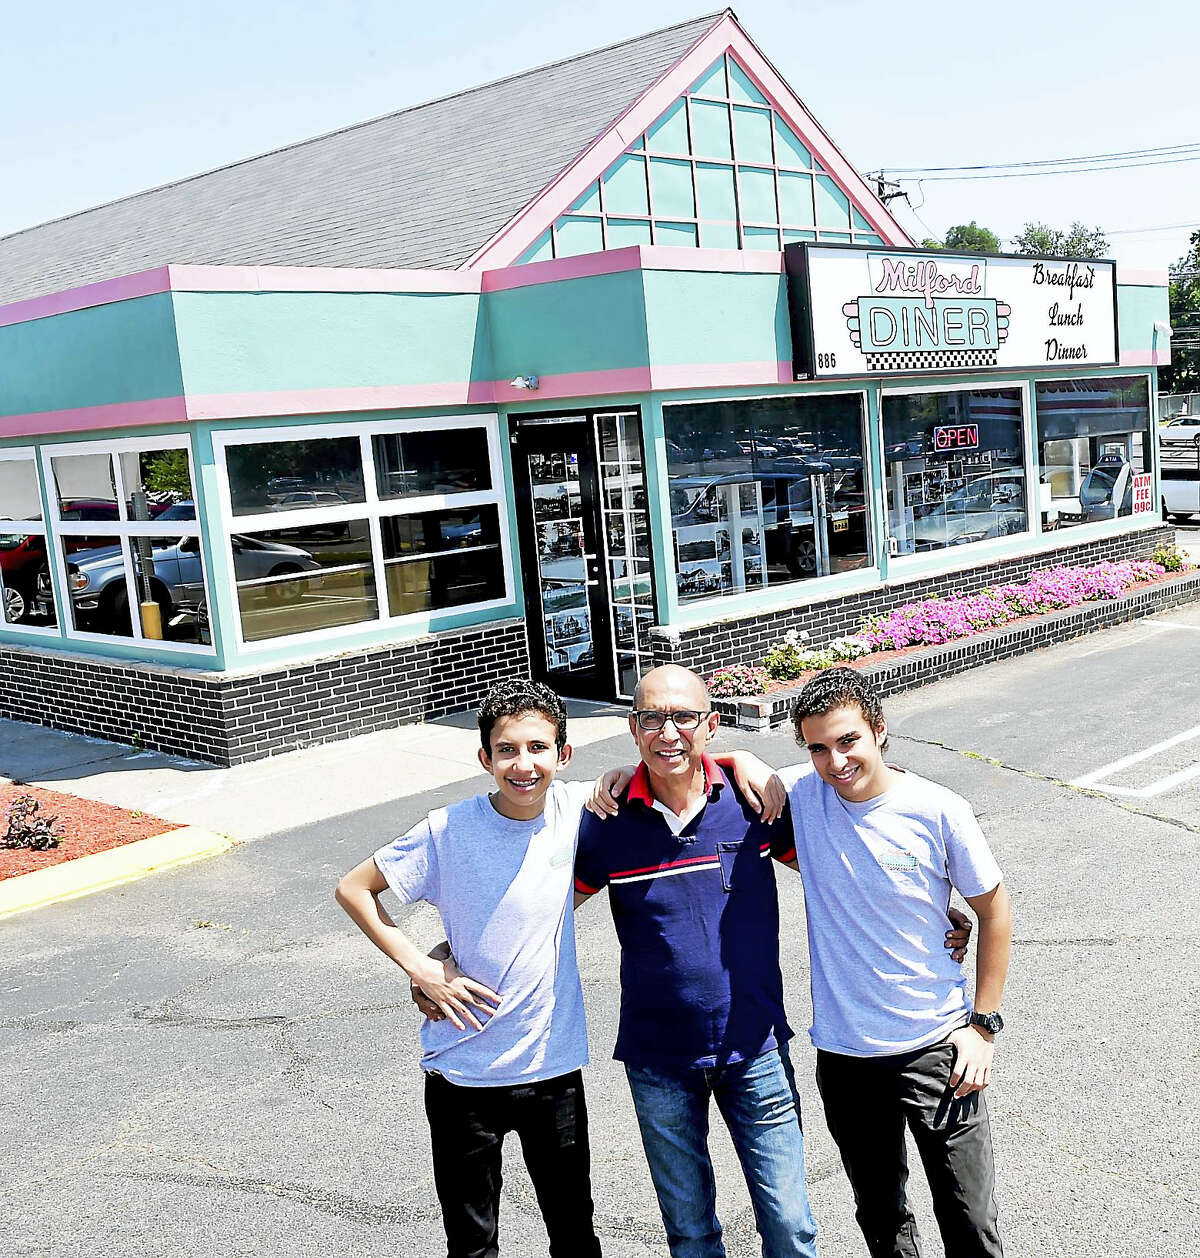 Owner Moe Elhelw, center, with his two sons Samir, 17, left, and Amir, 14, at his Milford Diner on Bridgeport Avenue.